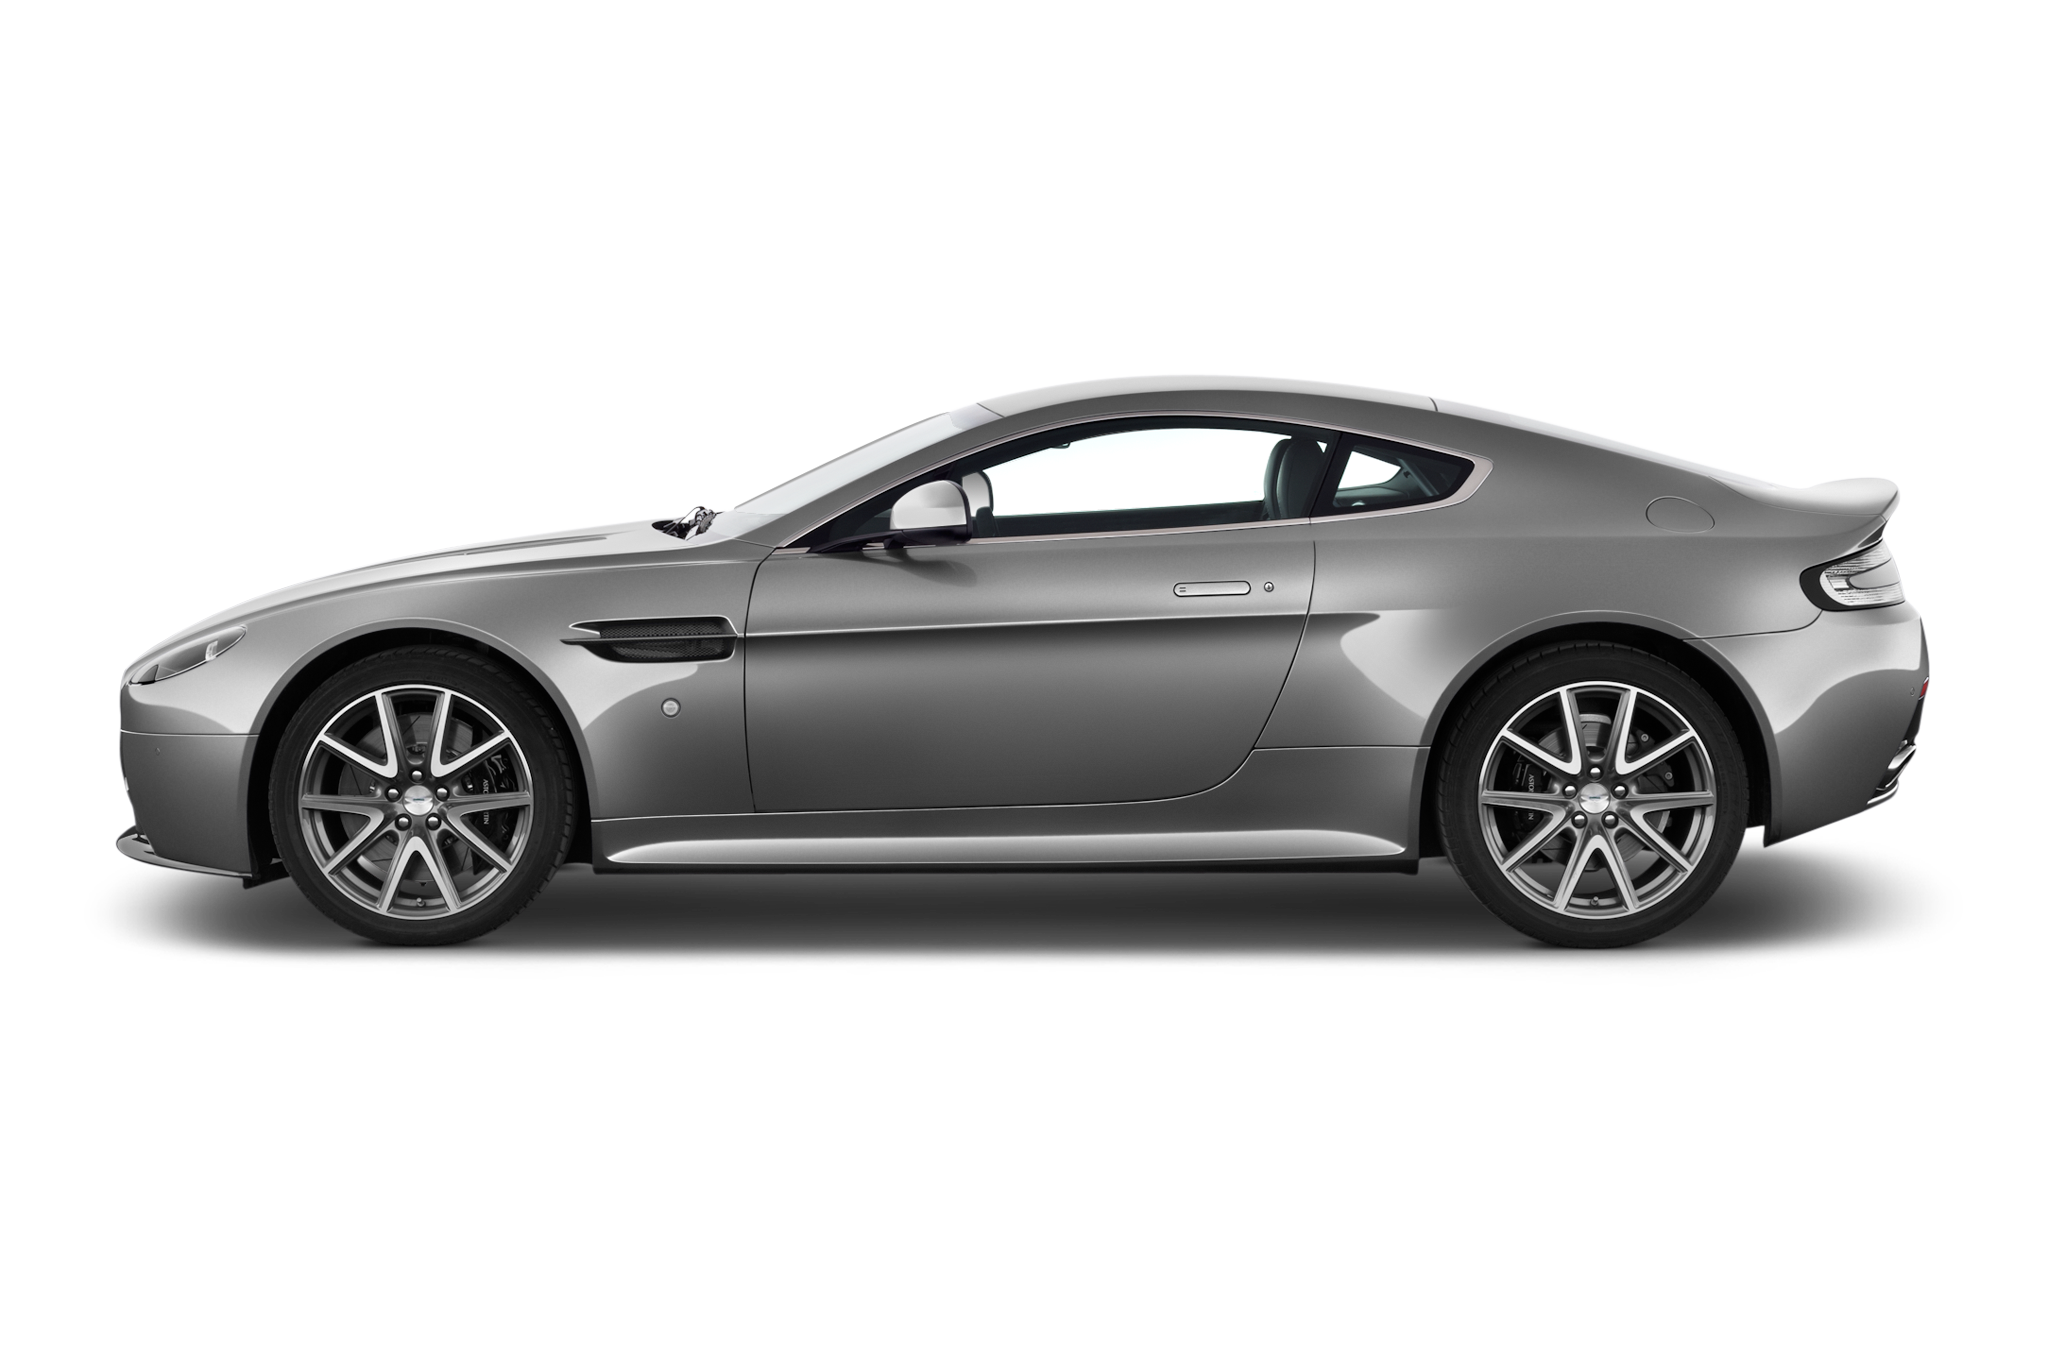 2008 Cts in addition Db9 2004 2016 in addition 2016 Aston Martin V8 Vantage Overview C25314 likewise Review 2015 Porsche 911 Gt3 Rs moreover Aston Martin Vulcan 2016. on 2016 aston martin v8 vantage gt specs